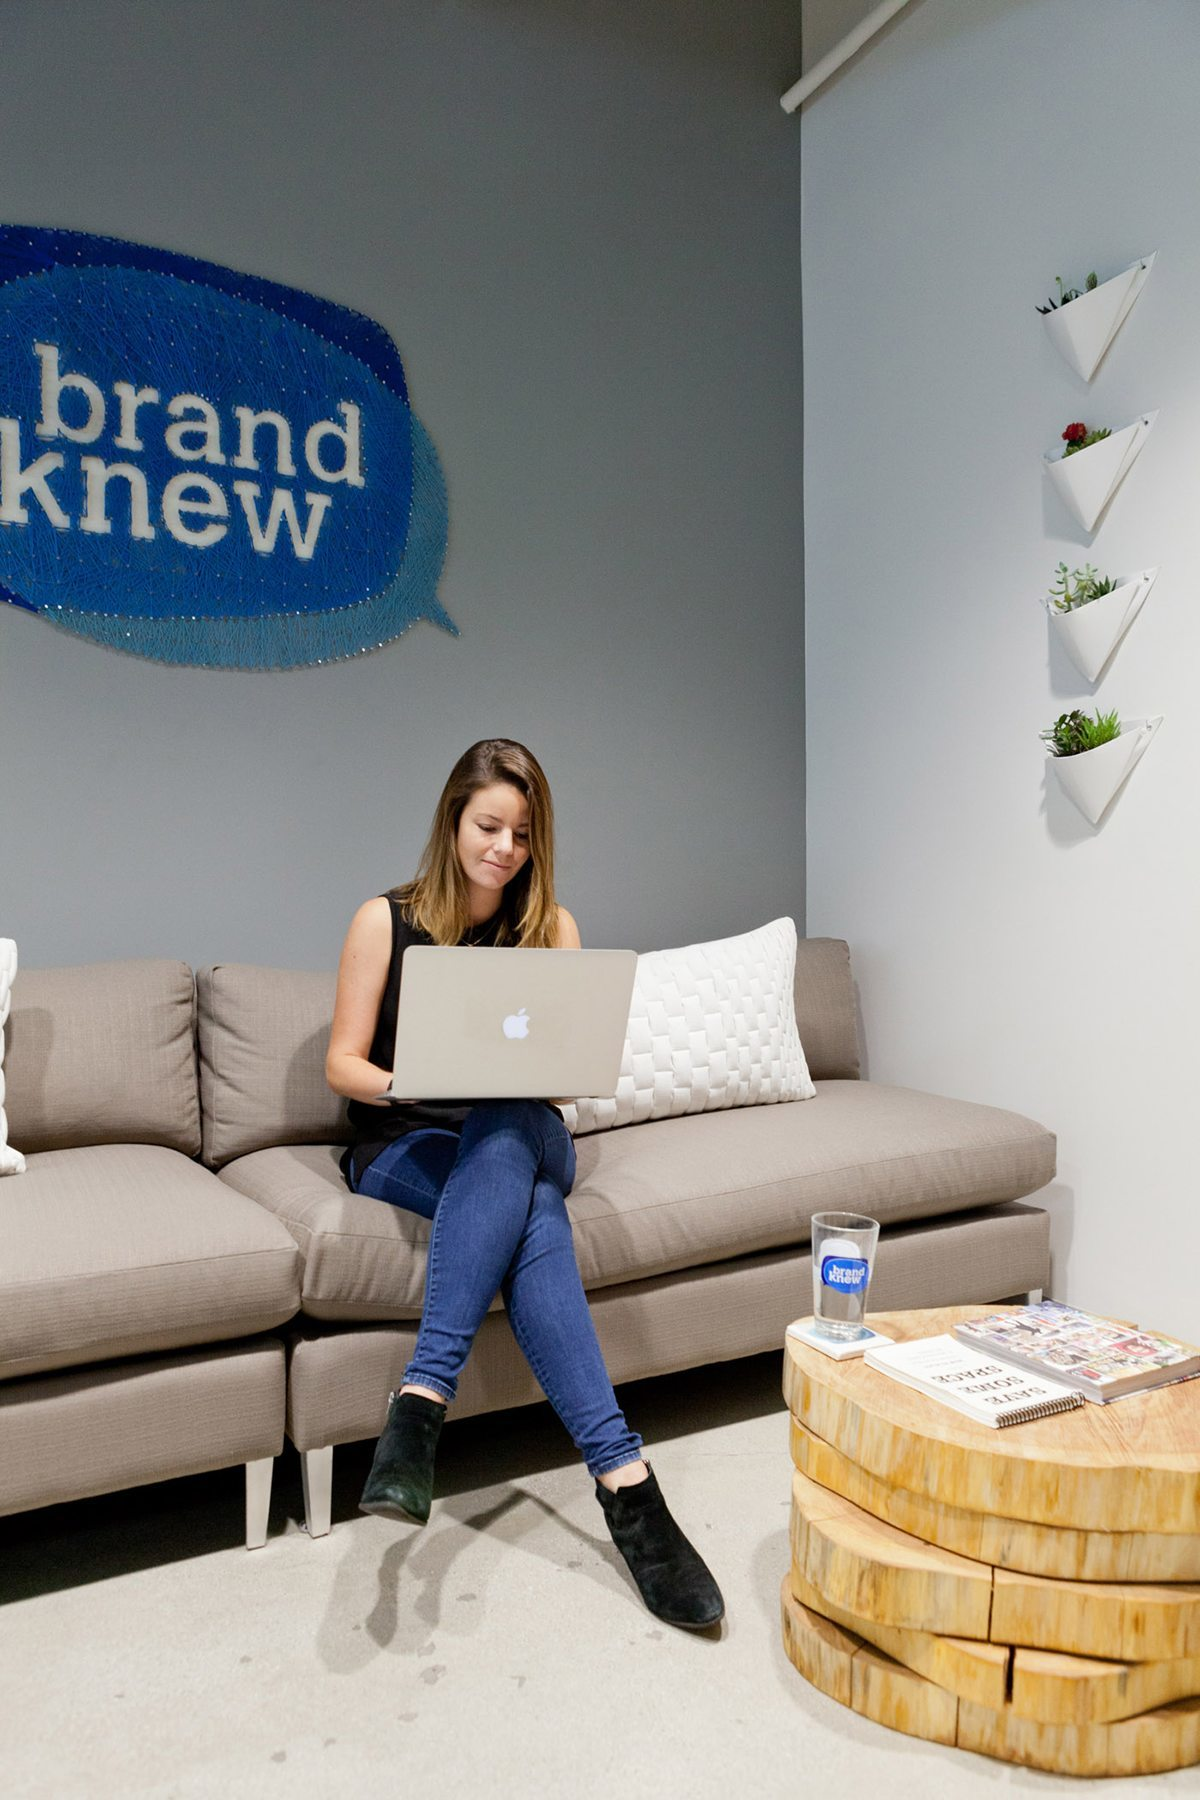 brand-knew-los-angeles-office-2